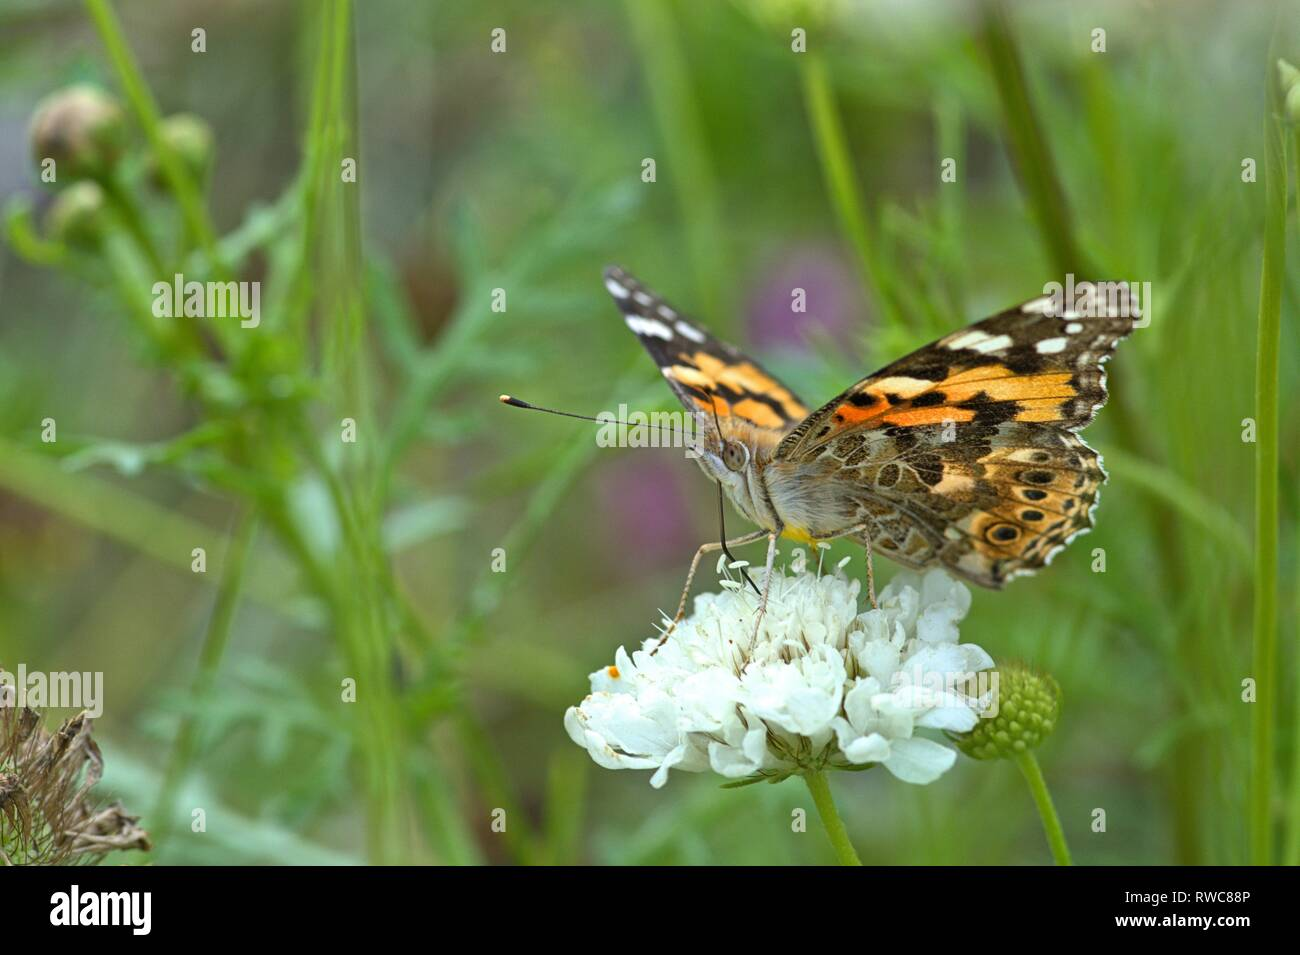 Schleswig, Deutschland. 16th Aug, 2018. A Painted Lady (Vanessa cardui, Syn .: Cynthia cardui), a butterfly of the Nymphalidae family on a flower in a flowerbed in the Furstengarten in Schleswig. Class: Insects (Insecta), Order: Butterflies (Lepidoptera), Uberfamilie: Papilionoidea, Family: Nymphalidae, Genus: Vanessa, Species: Painted Lady | usage worldwide Credit: dpa/Alamy Live News - Stock Image